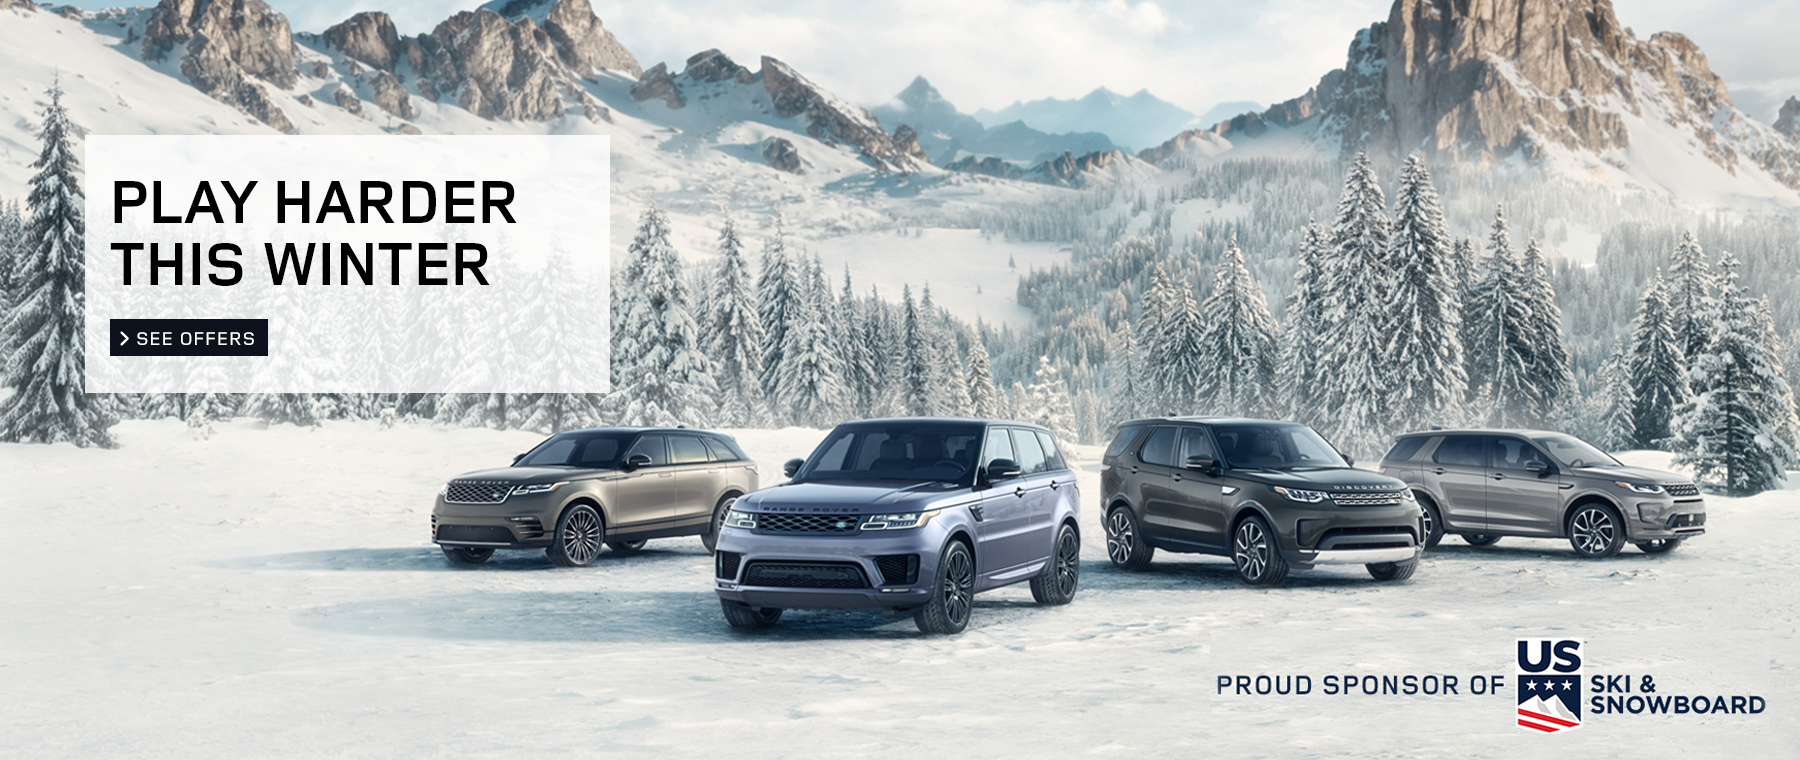 2020 Land Rover Play Harder This Winter Winter Campaign click to view special offers